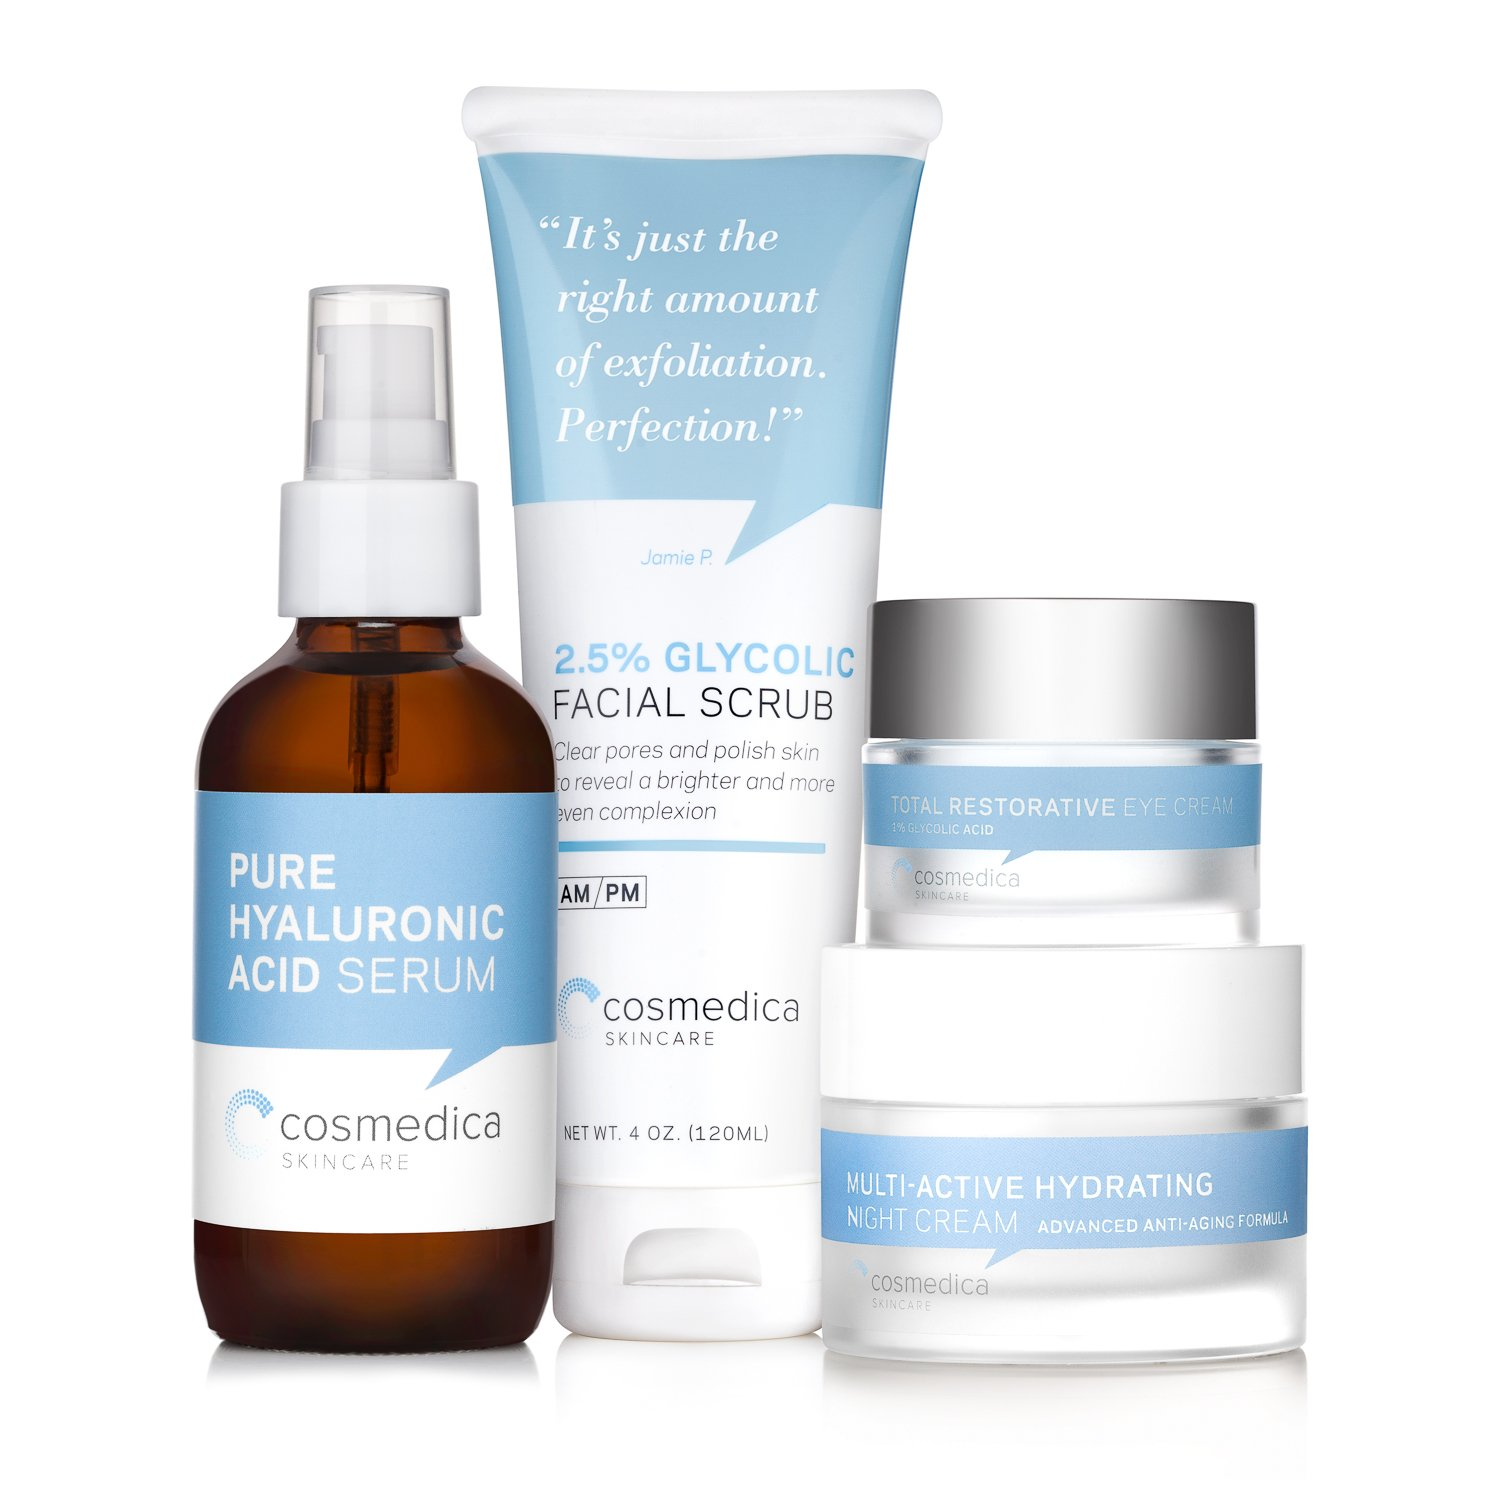 Complete Skincare Kit- Hyaluronic Acid Serum (4 Ounce), Glycolic Facial Scrub (4 Ounce), Multi Active Hydrating Night Cream and Total Restorative Eye Cream